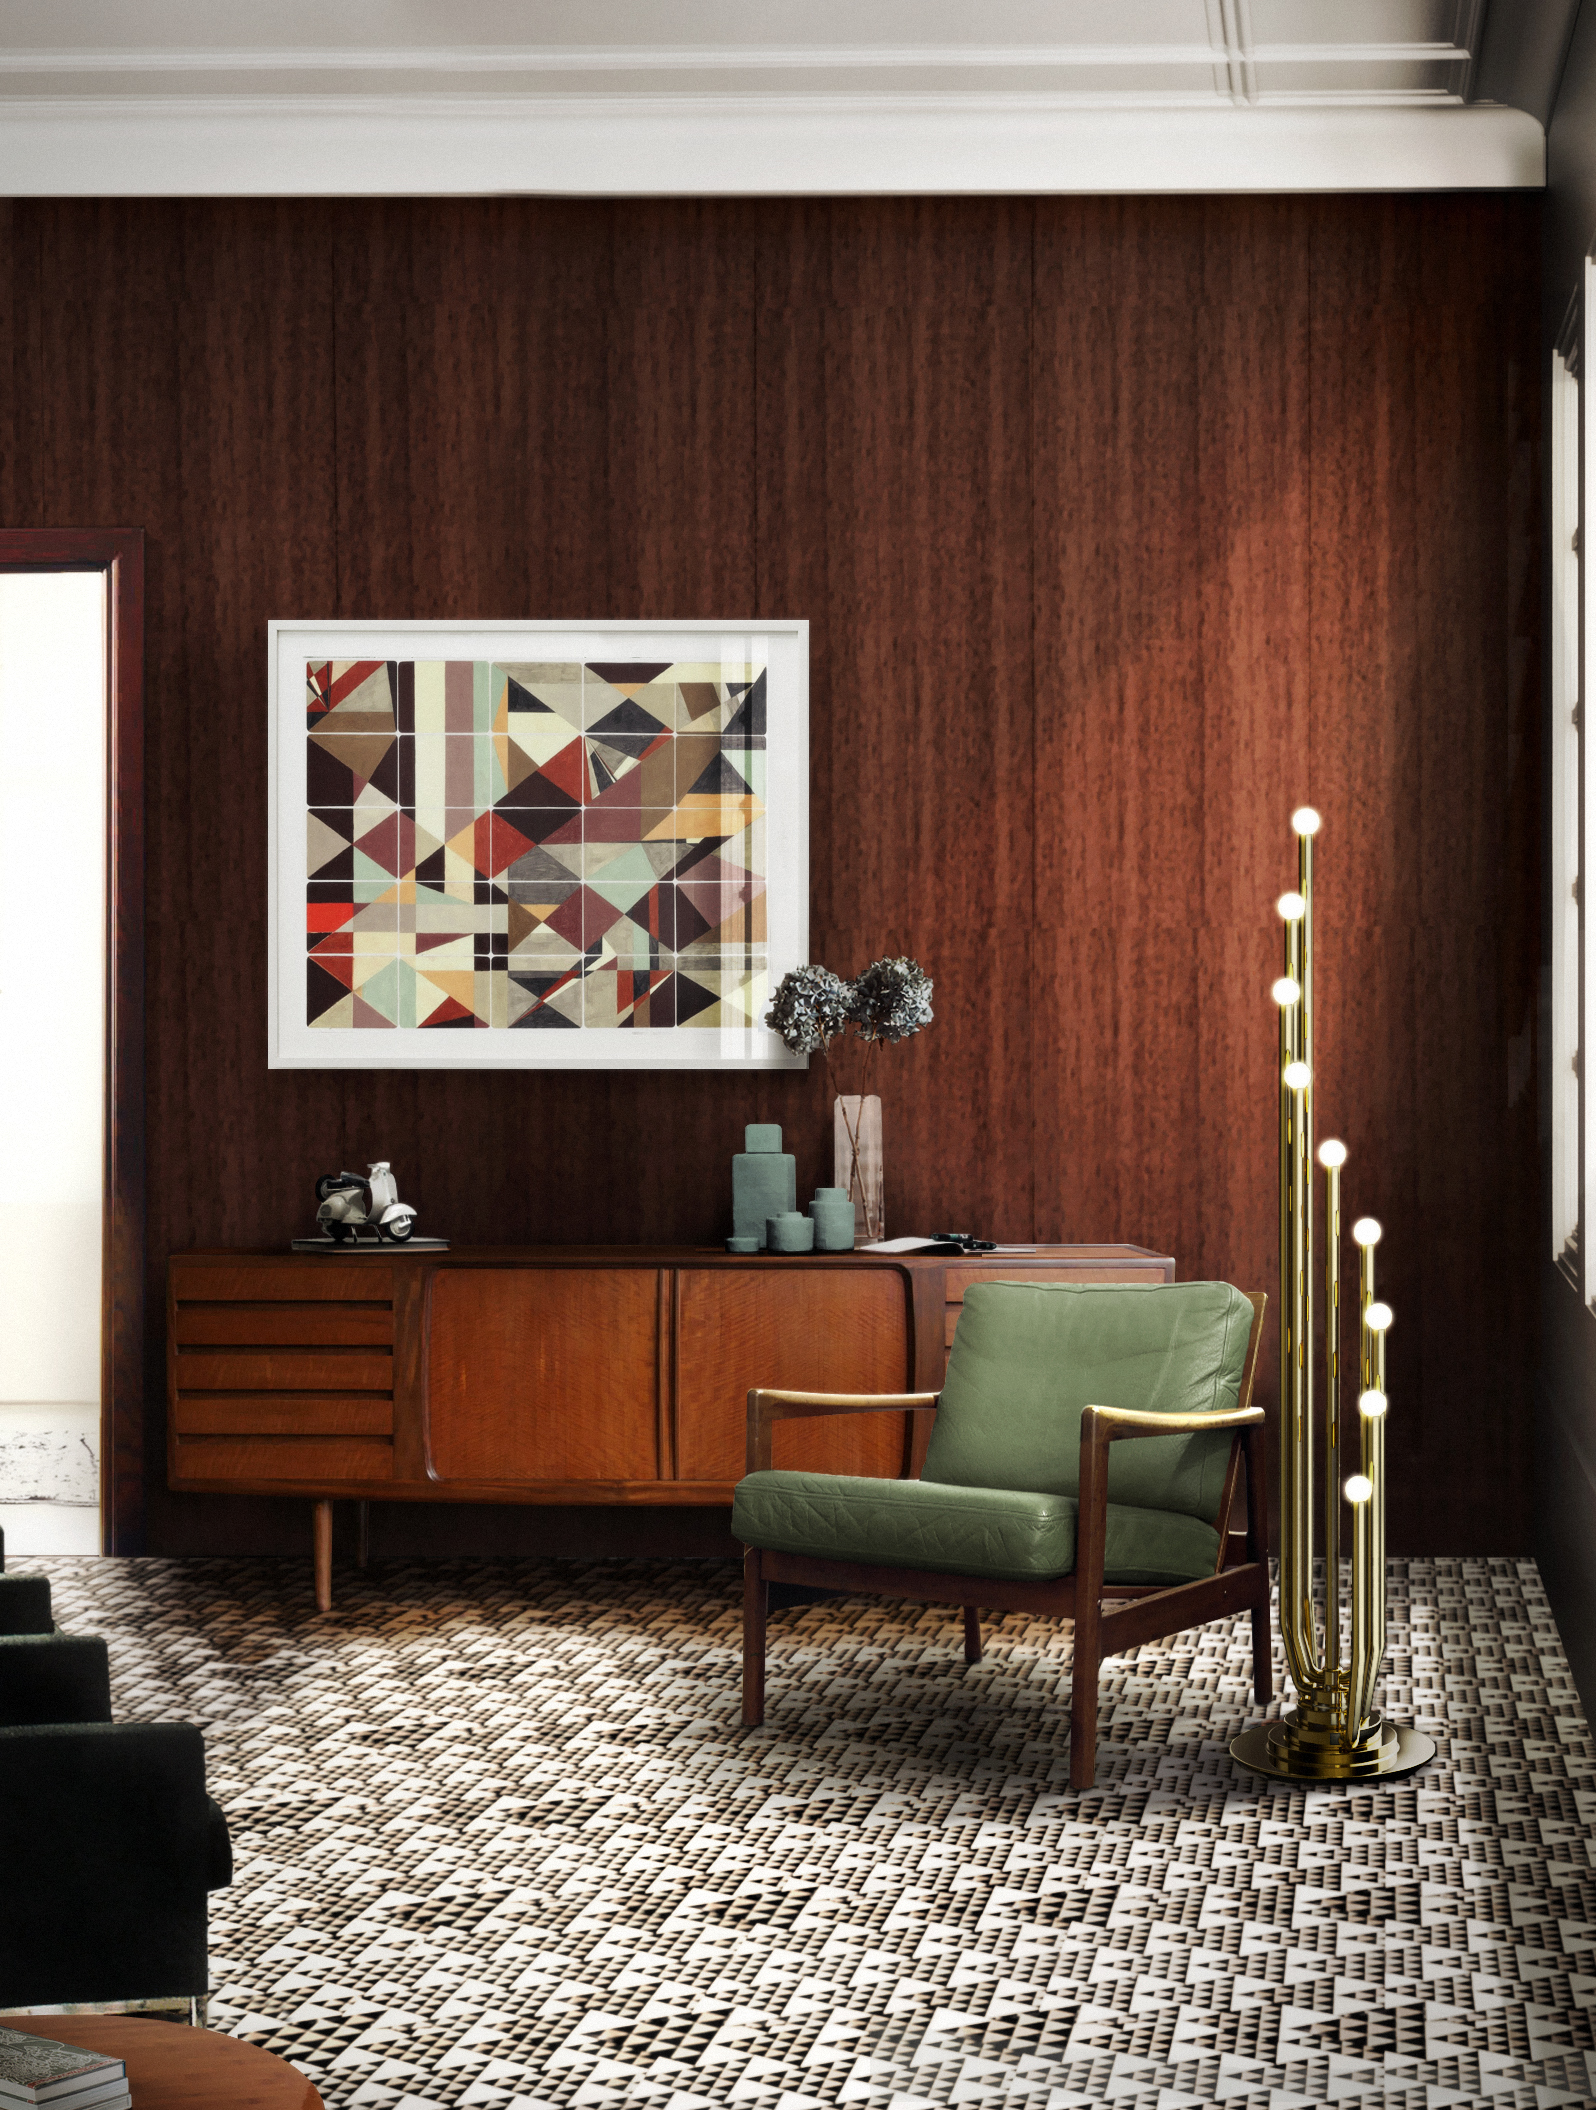 Add Flourish to Your Mid-Century Modern Home mid-century modern home Add Flourish to Your Mid-Century Modern Home Add Flourish to Your Mid Century Modern Home 5